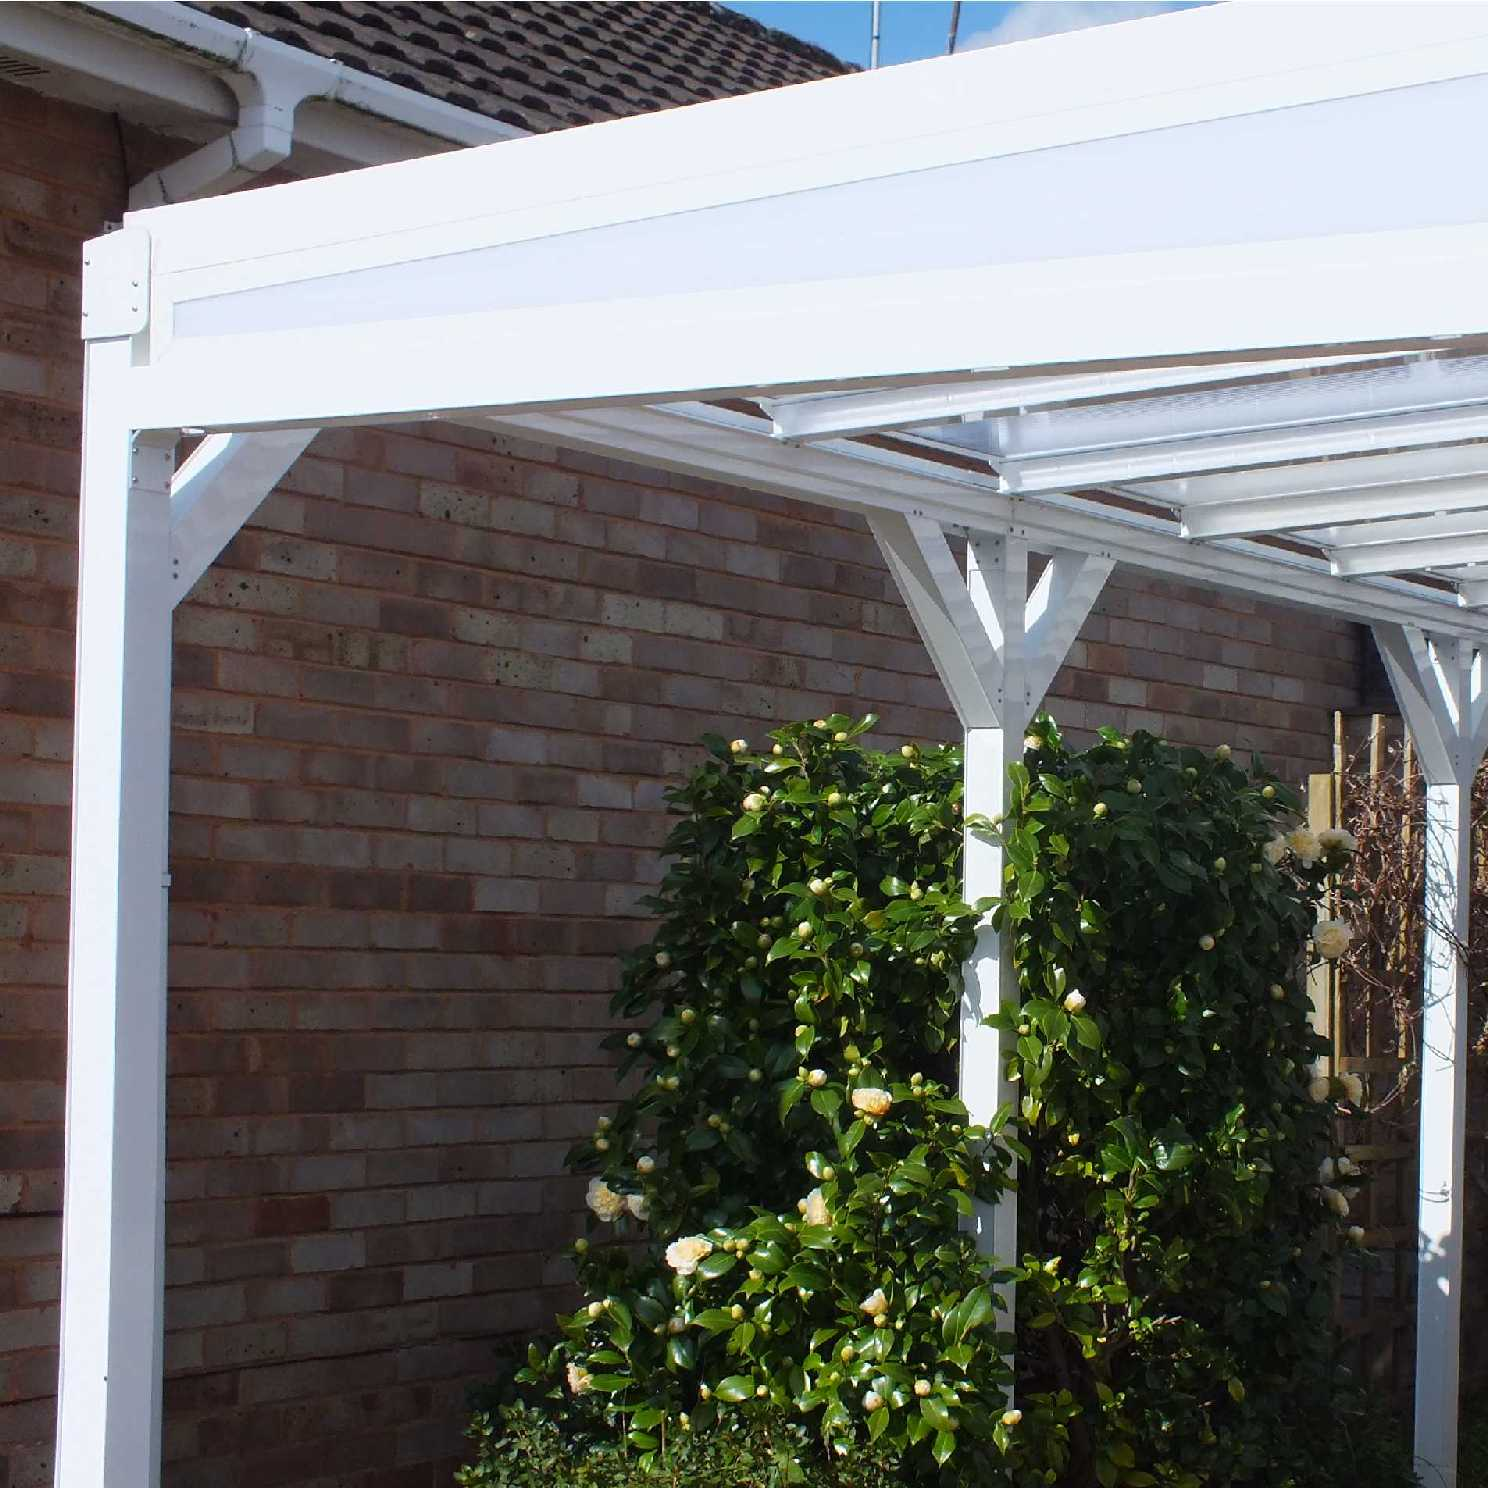 Omega Smart White Lean-To Canopy with 16mm Polycarbonate Glazing - 7.4m (W) x 4.5m (P), (4) Supporting Posts from Omega Build